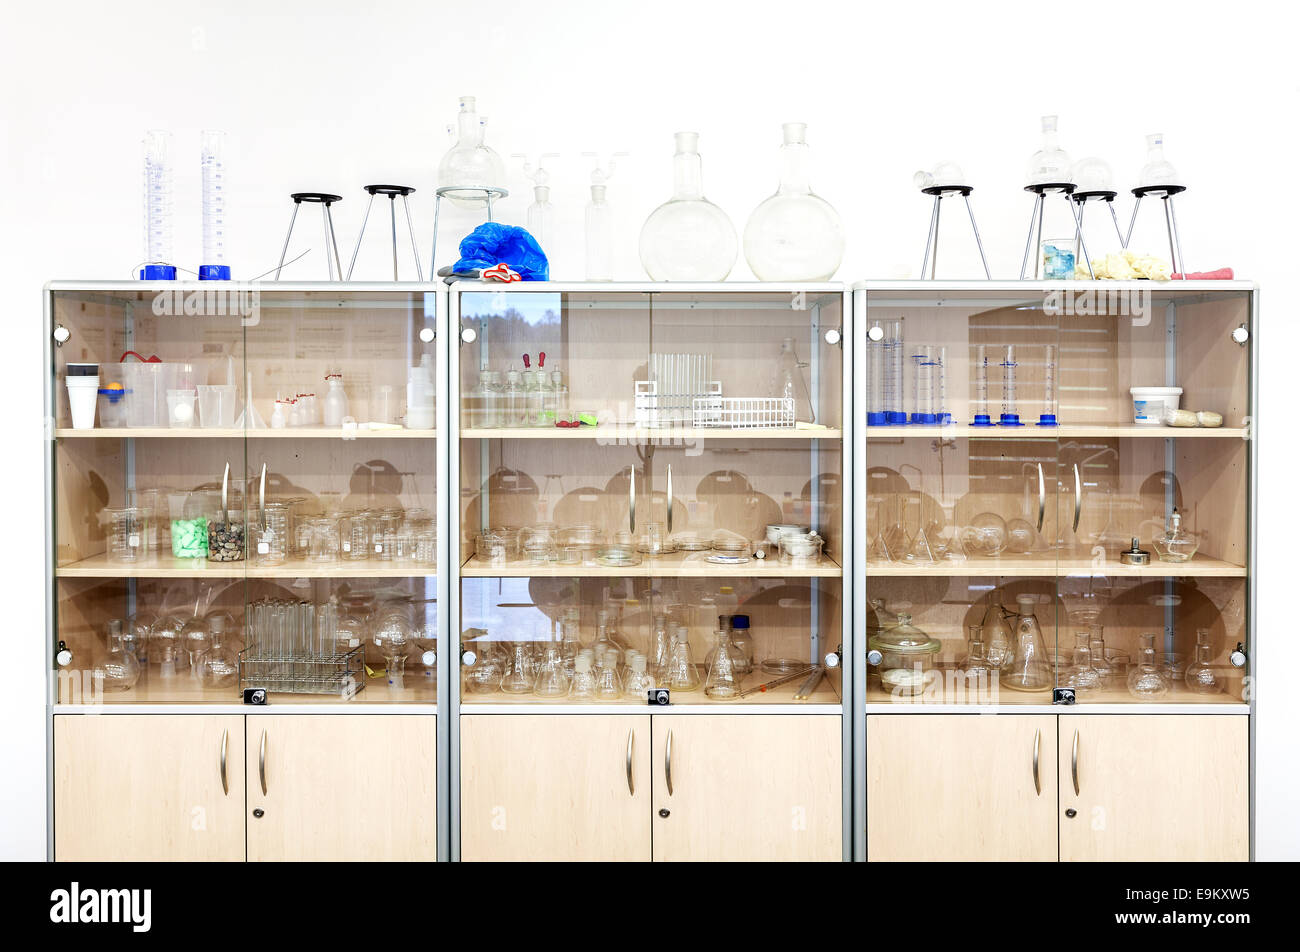 Different laboratory glassware and equipment on shelves. - Stock Image